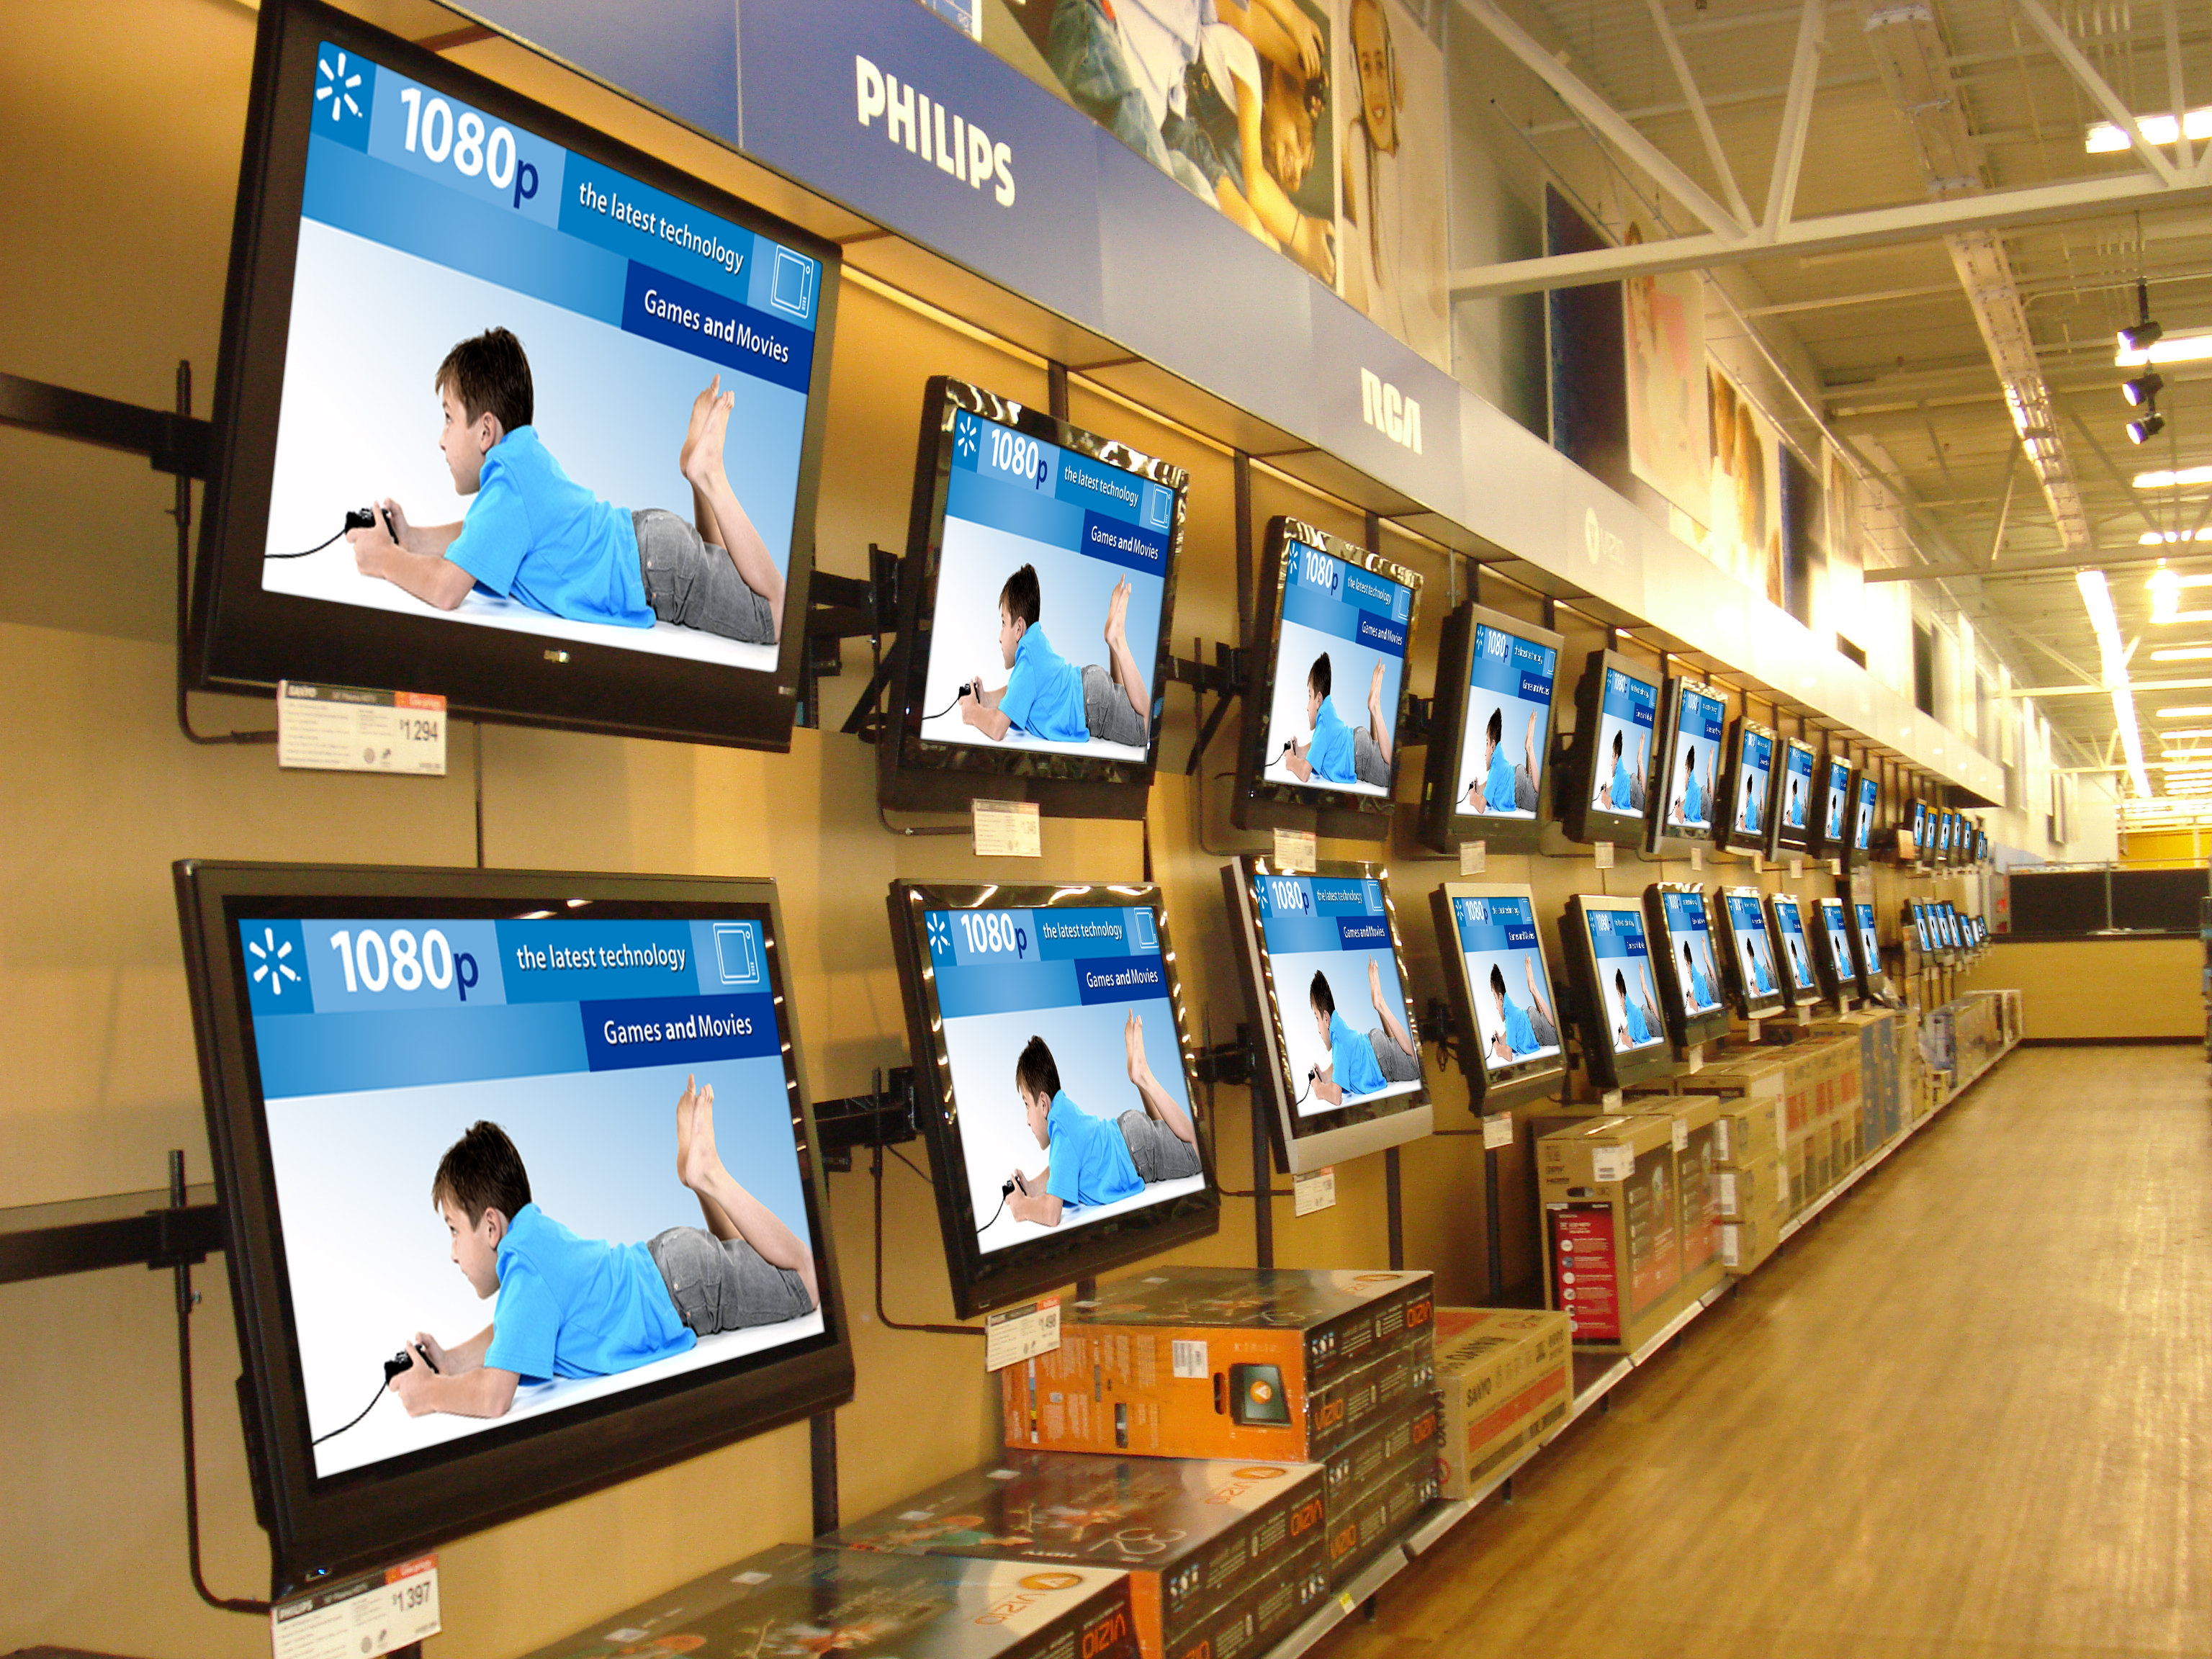 Nov 08,  · If you're eager to get a jump on your Black Friday shopping and are hoping to snag a new TV, check out Walmart's deals starting today. Televisions will play a big part in the retailer's in.